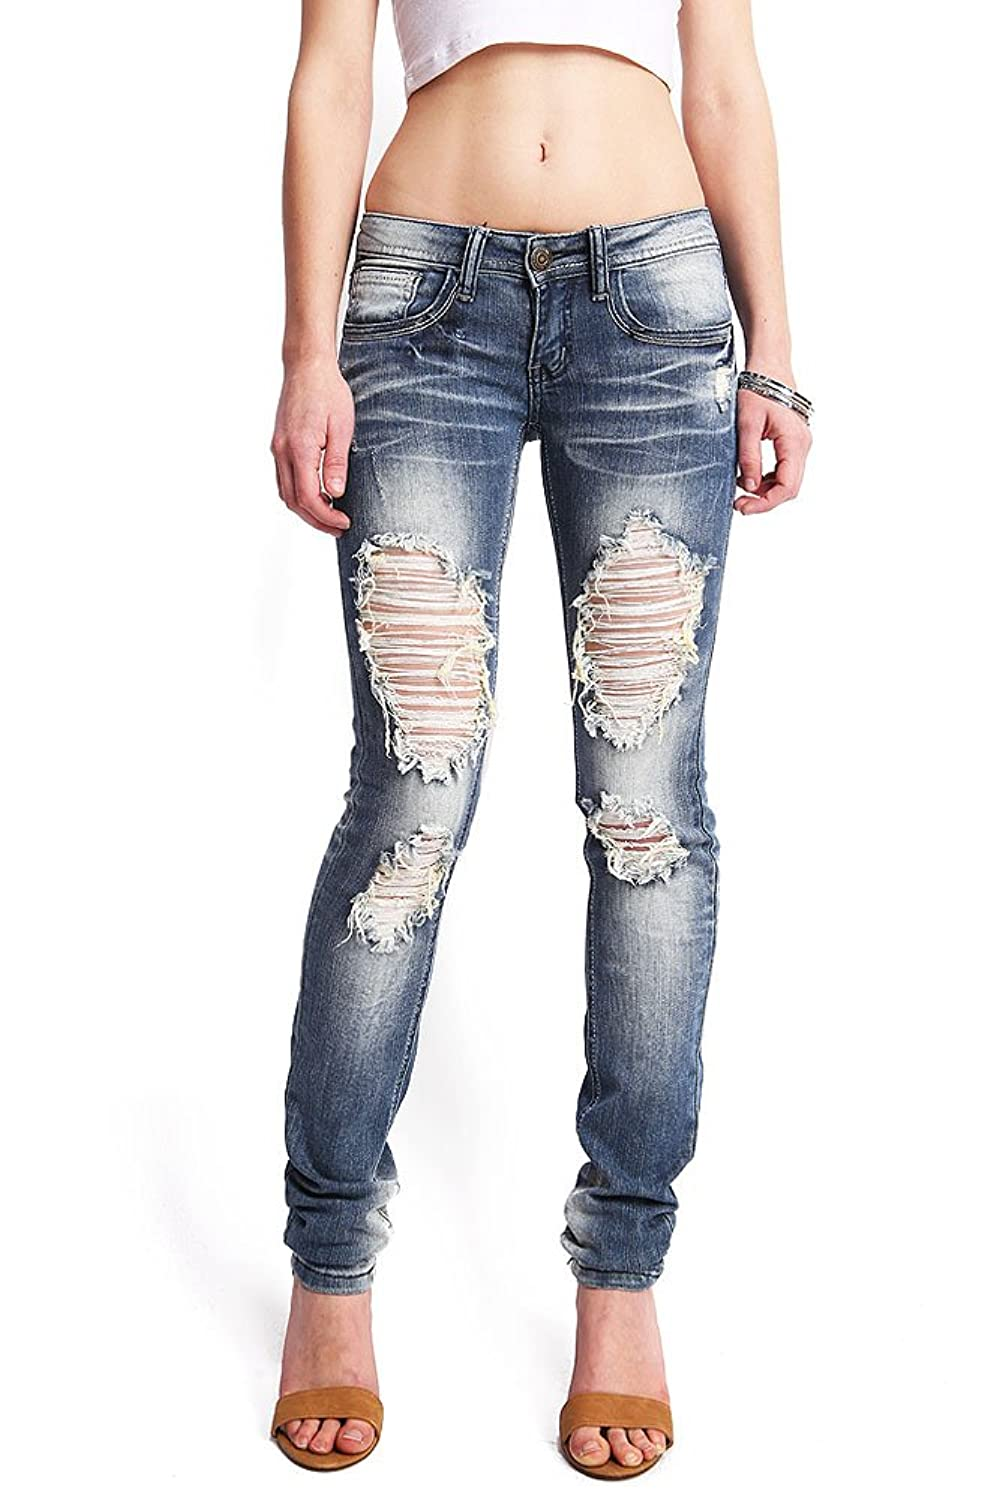 Machine Women's Juniors Low Rise Ripped Skinny Machine Jeans